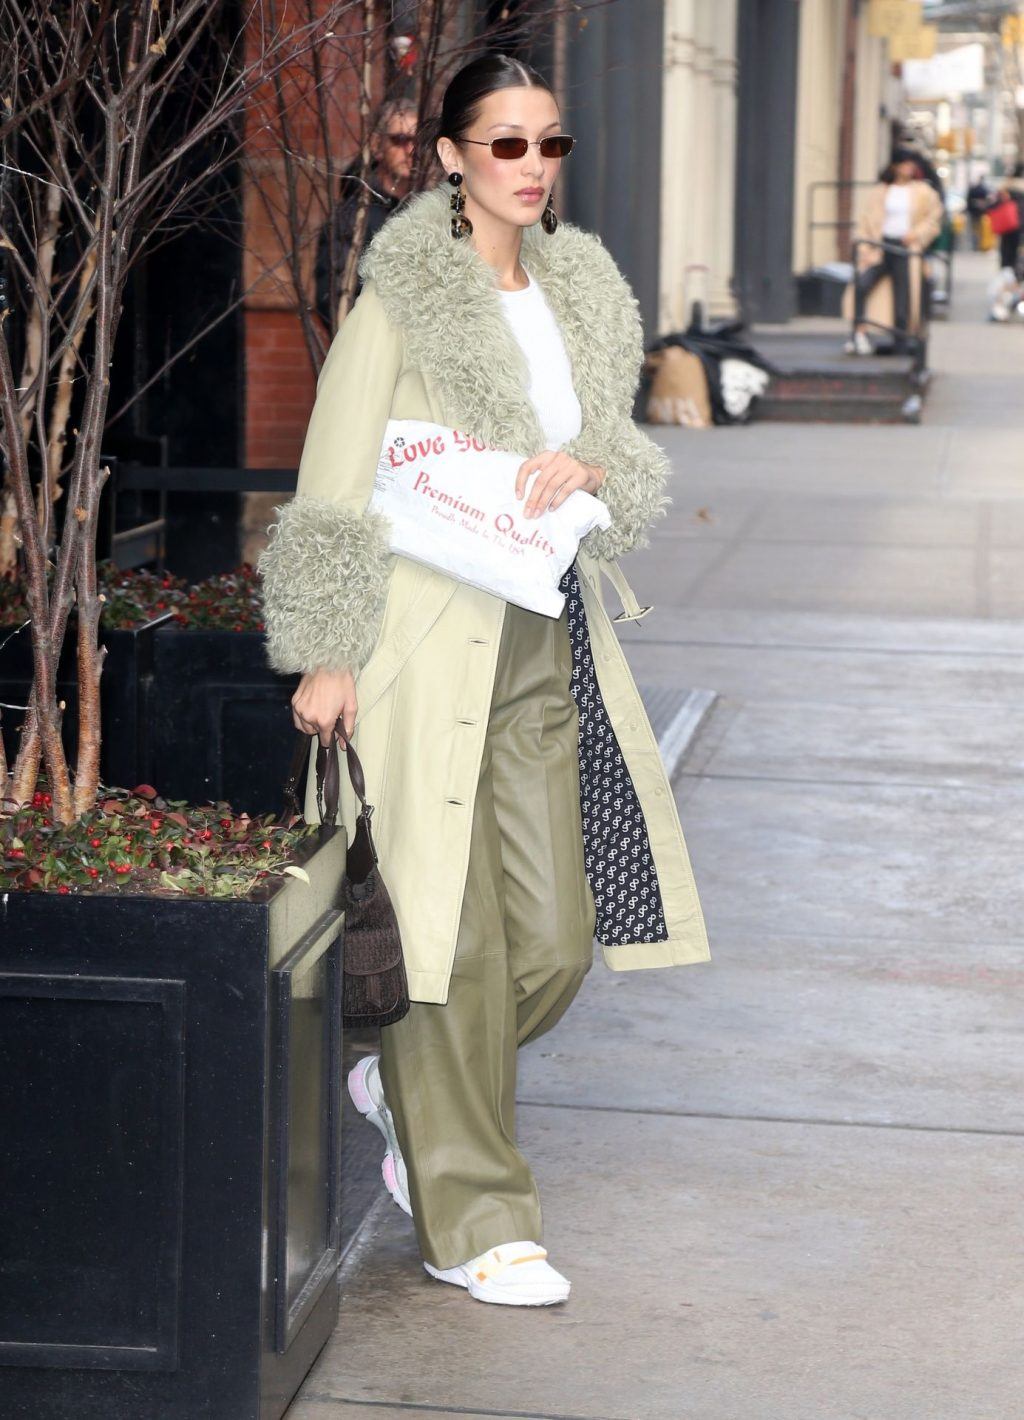 Bella Hadid See through The Fappening Blog 48 1024x1420 - Braless Bella Hadid Arrives at the Park Avenue Armory for the Marc Jacobs Fashion Show (59 Photos)